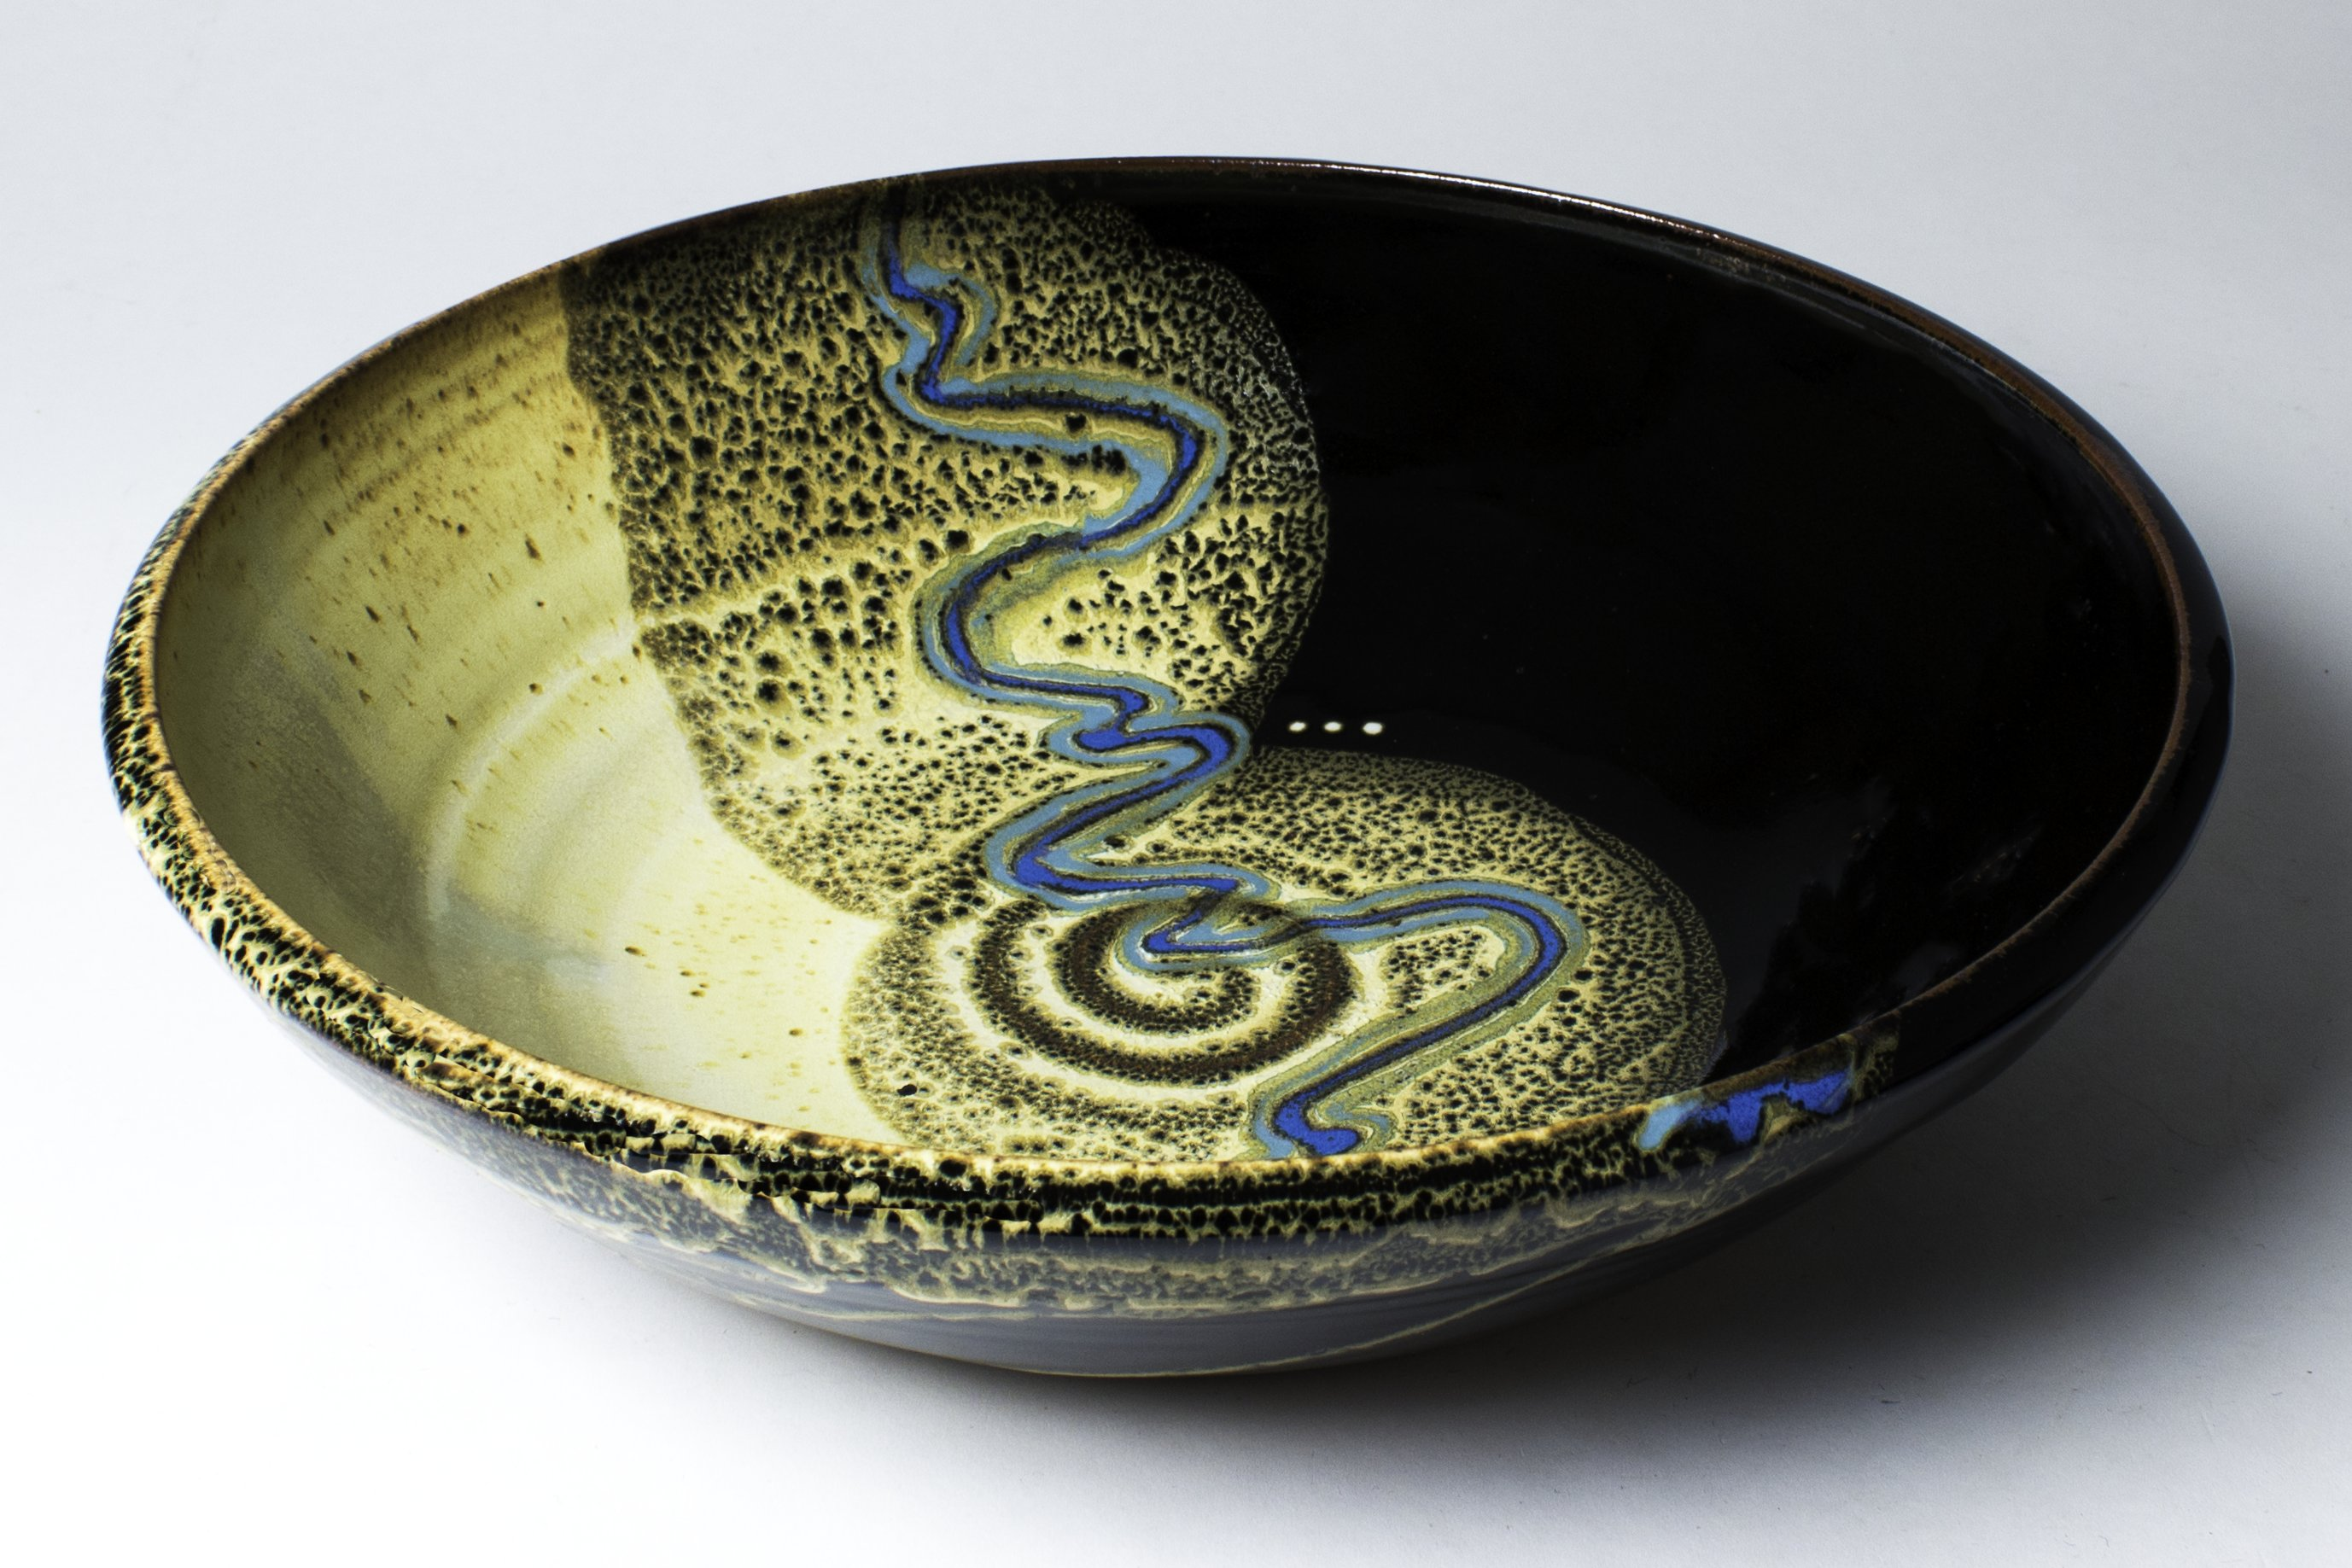 Smith grinds her own glazes from locally available minerals. Her primary ingredients include silica, feldspar, talc, red iron oxide and cobalt. This piece is glazed in her 'Yellow-stone' pattern